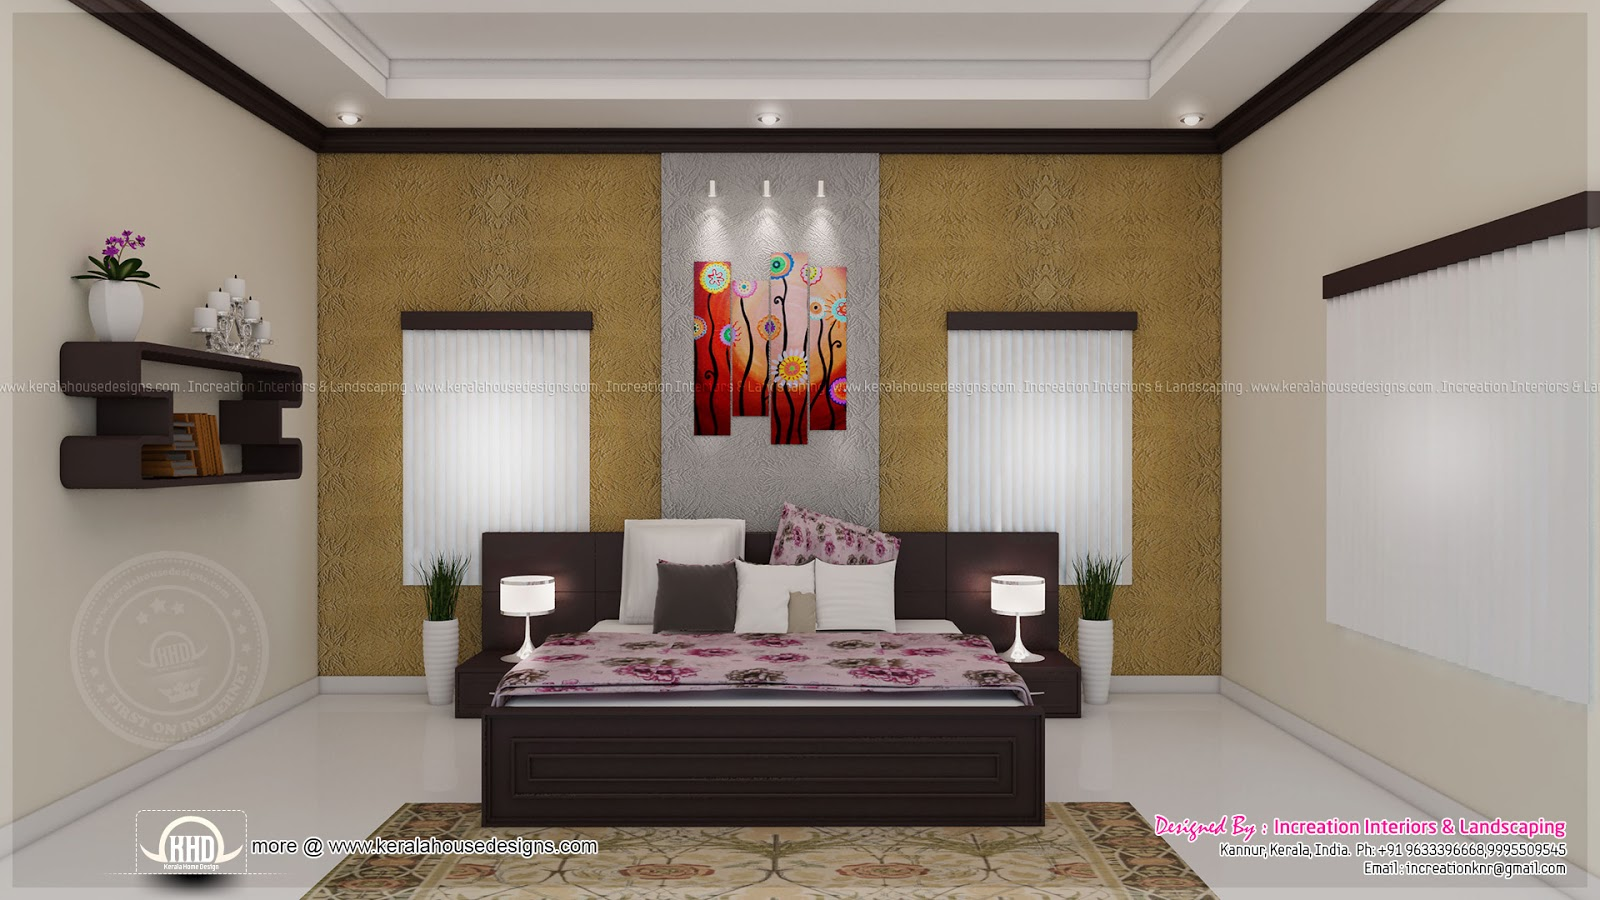 House interior ideas in 3d rendering kerala home design Interior decoration pictures